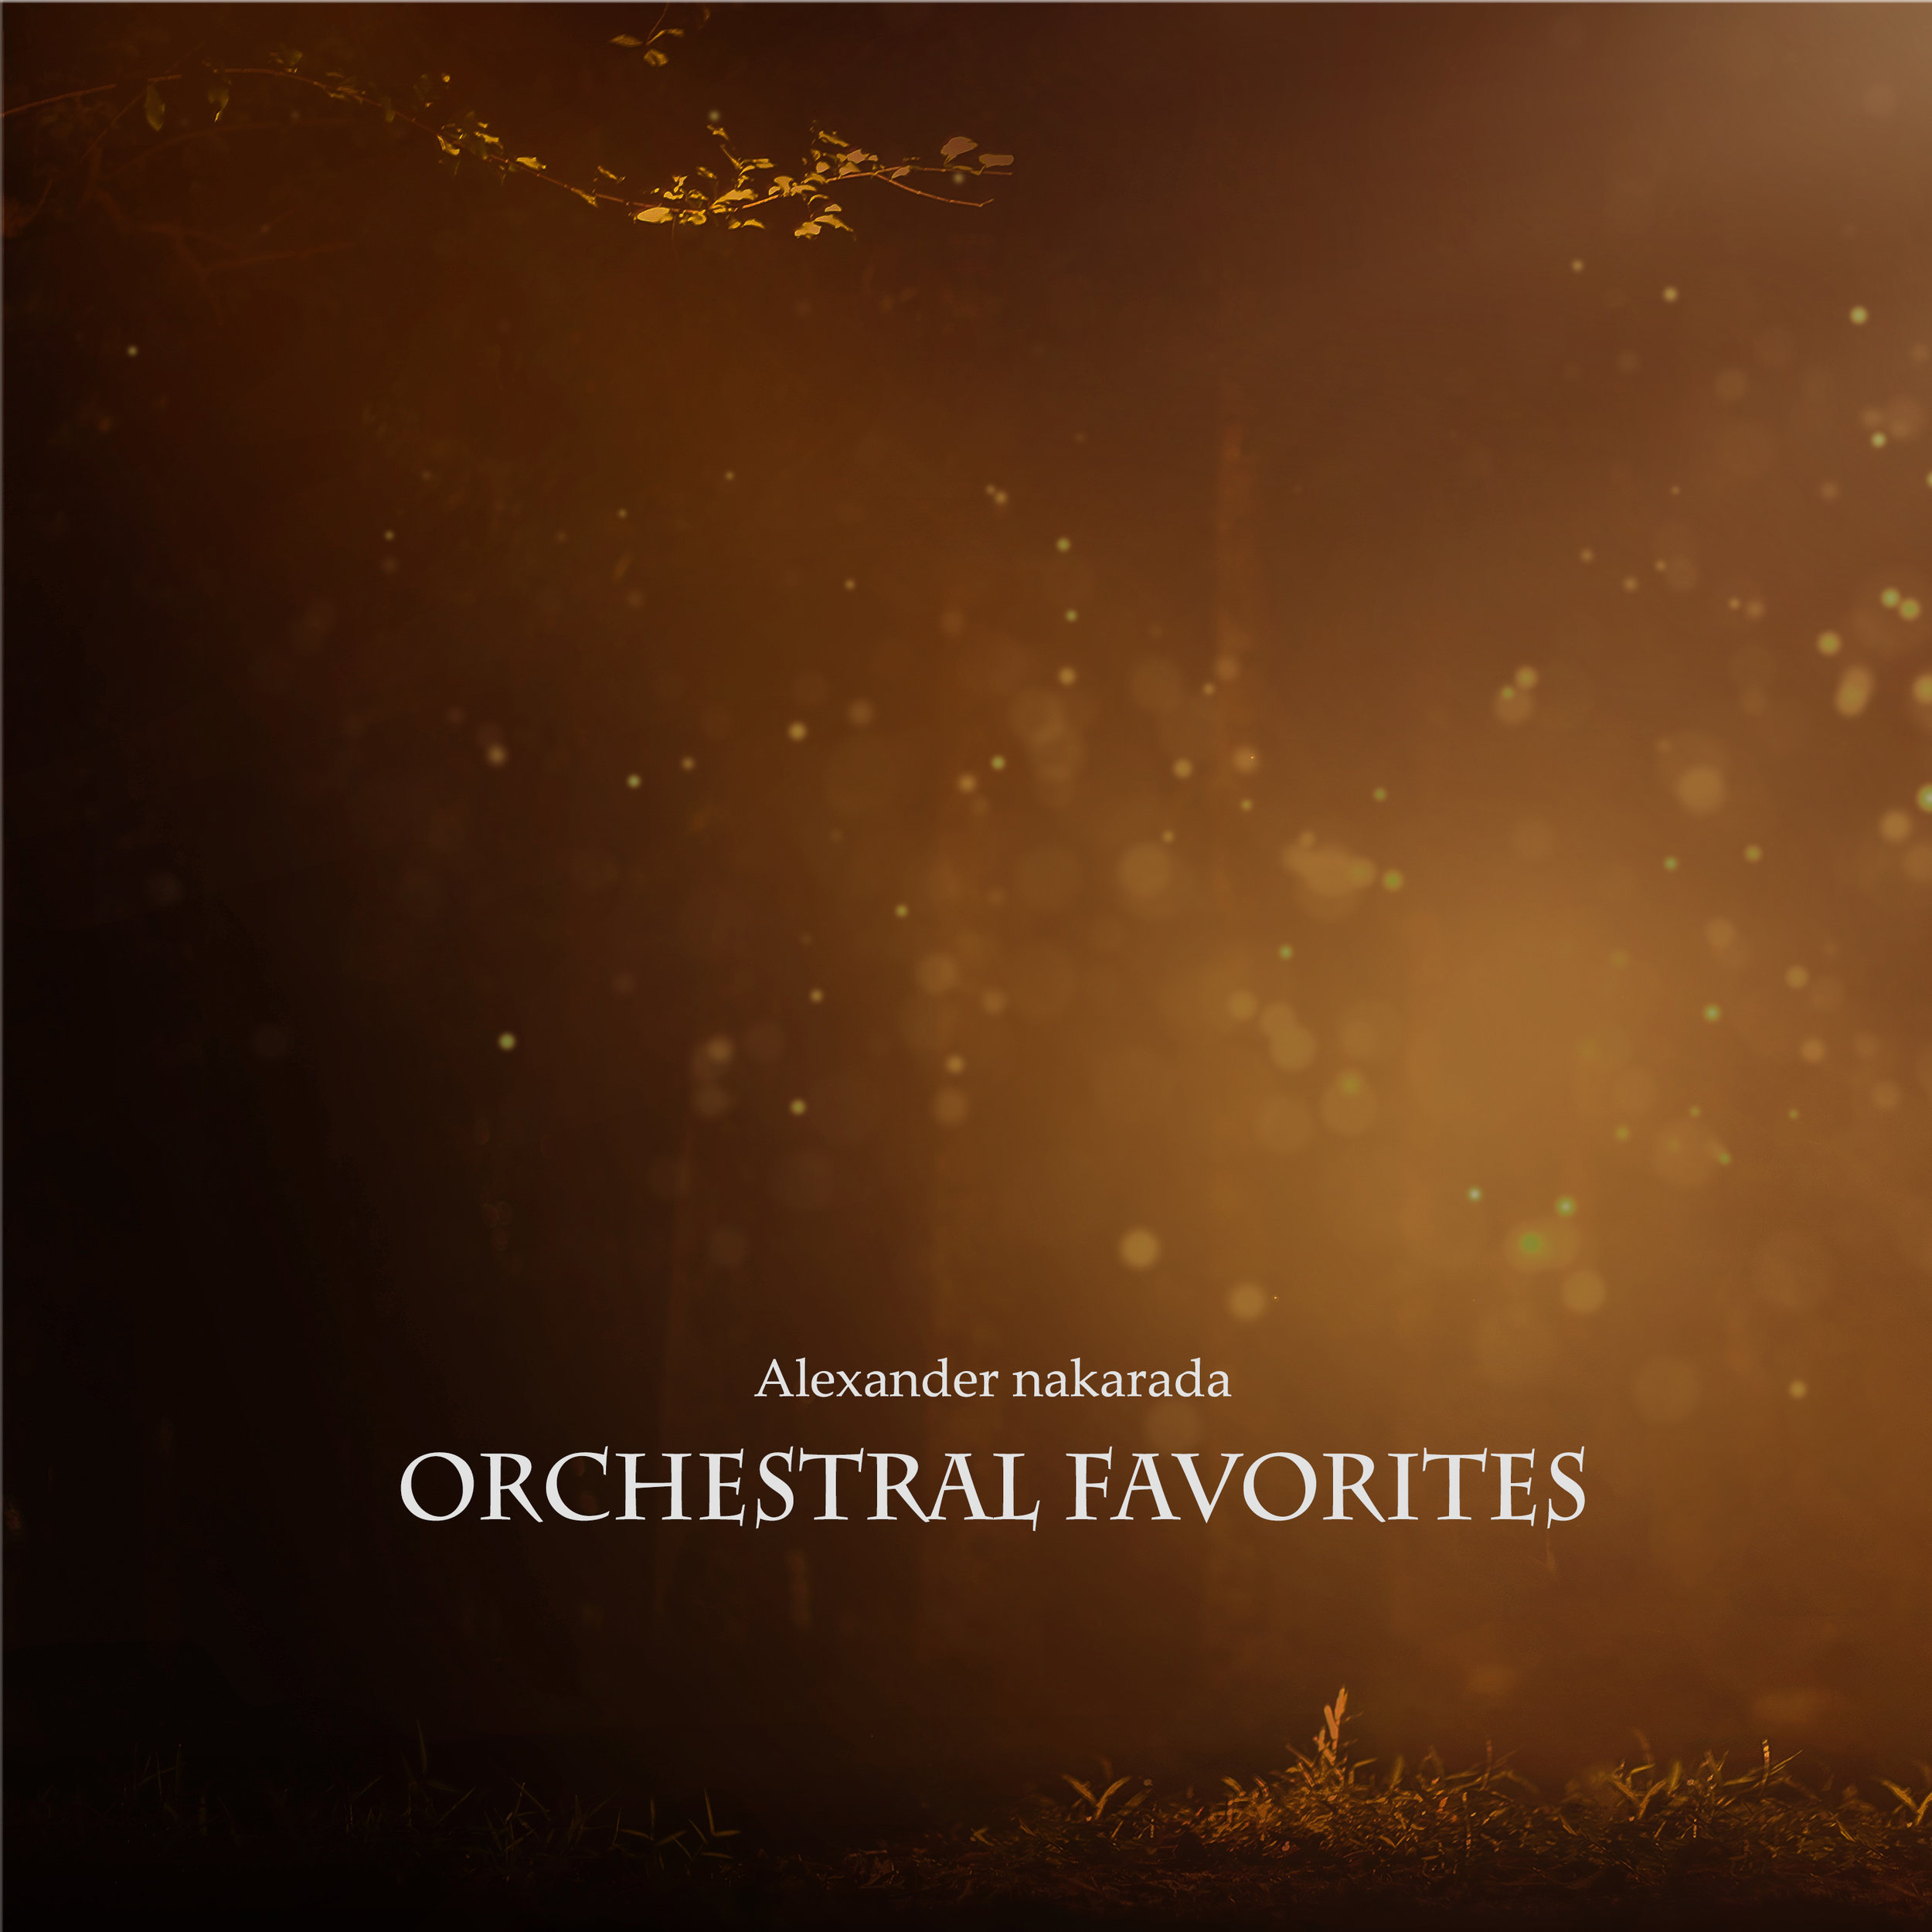 10. Orchestral Favorites - The is simply a collection of the orchestral pieces I was most happy about. Hopefully you are too!